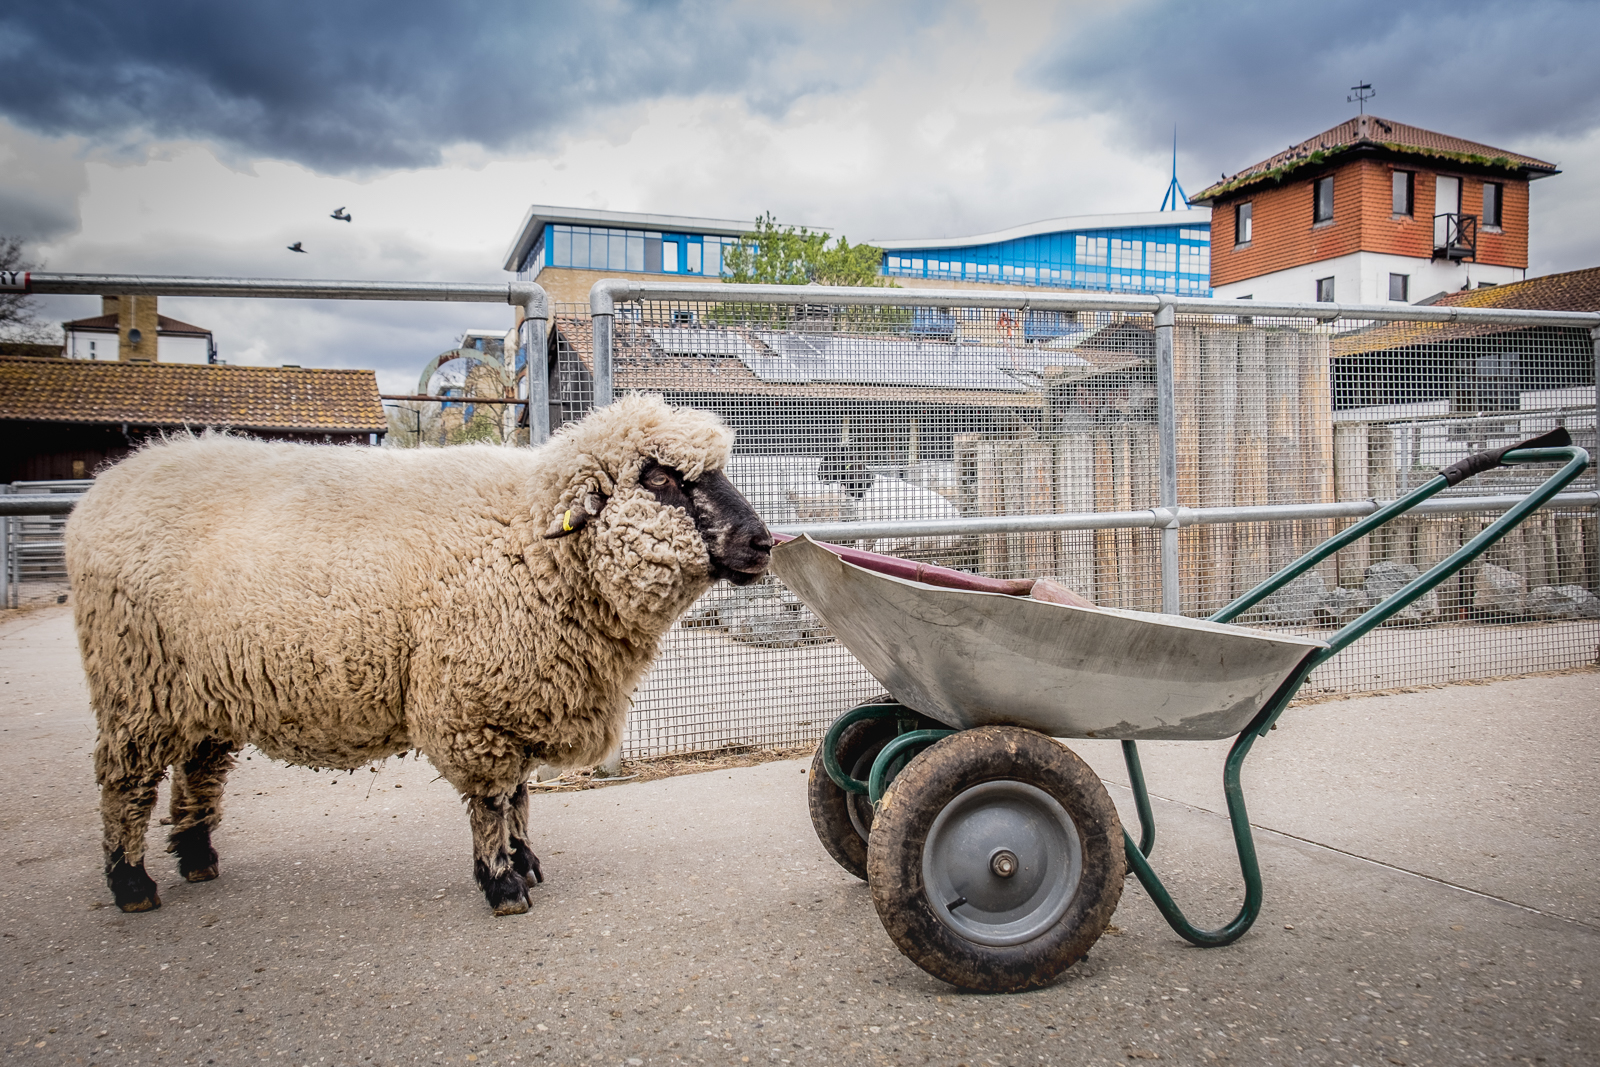 20160425_Southwark_Surrey-Docks-Farm_Sheep-At-Work